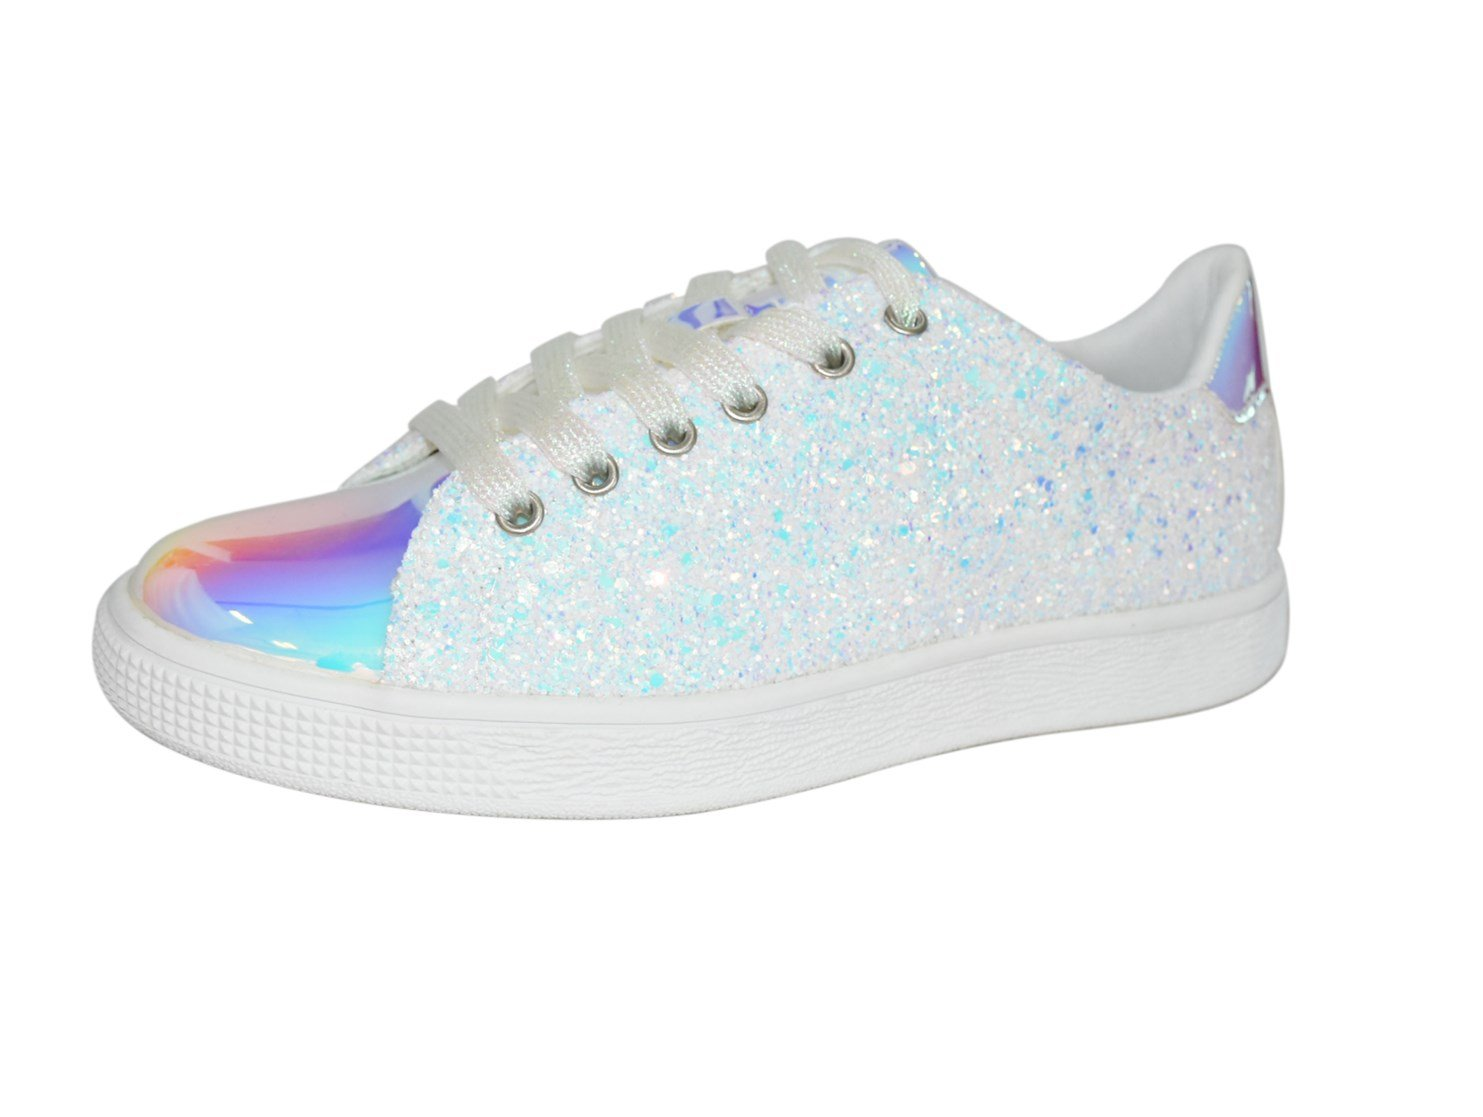 Lucky Step Glitter Sneakers Lace up | Fashion Sneakers | Sparkly Shoes for Women (10 B(M) US,White Hologram)